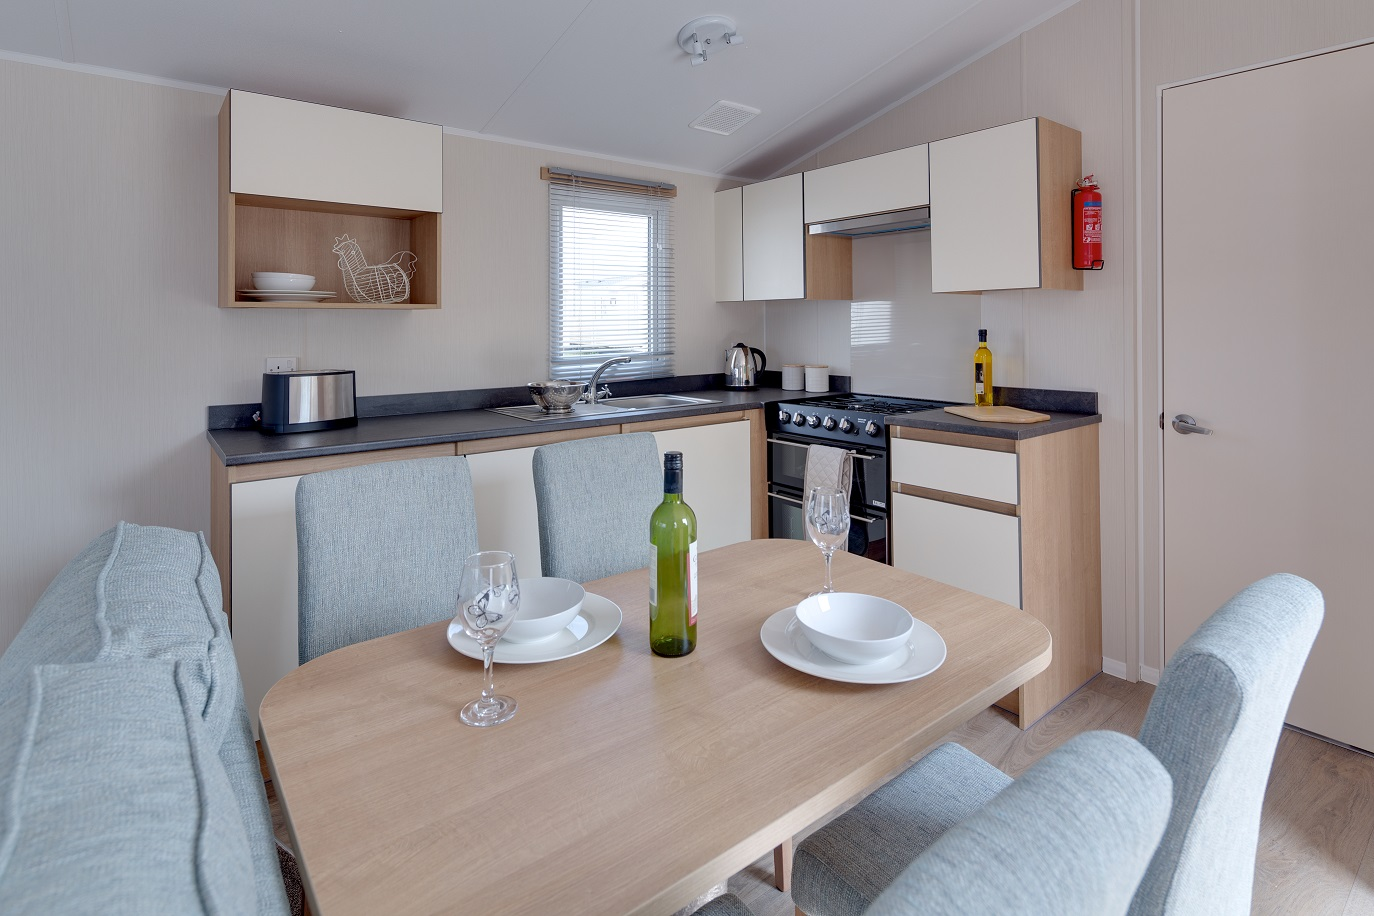 Willerby Ideal Mistral Plus+: Static Caravans and Holiday Homes for Sale on Caravan Parks, Bamburgh, Northumberland Image 2